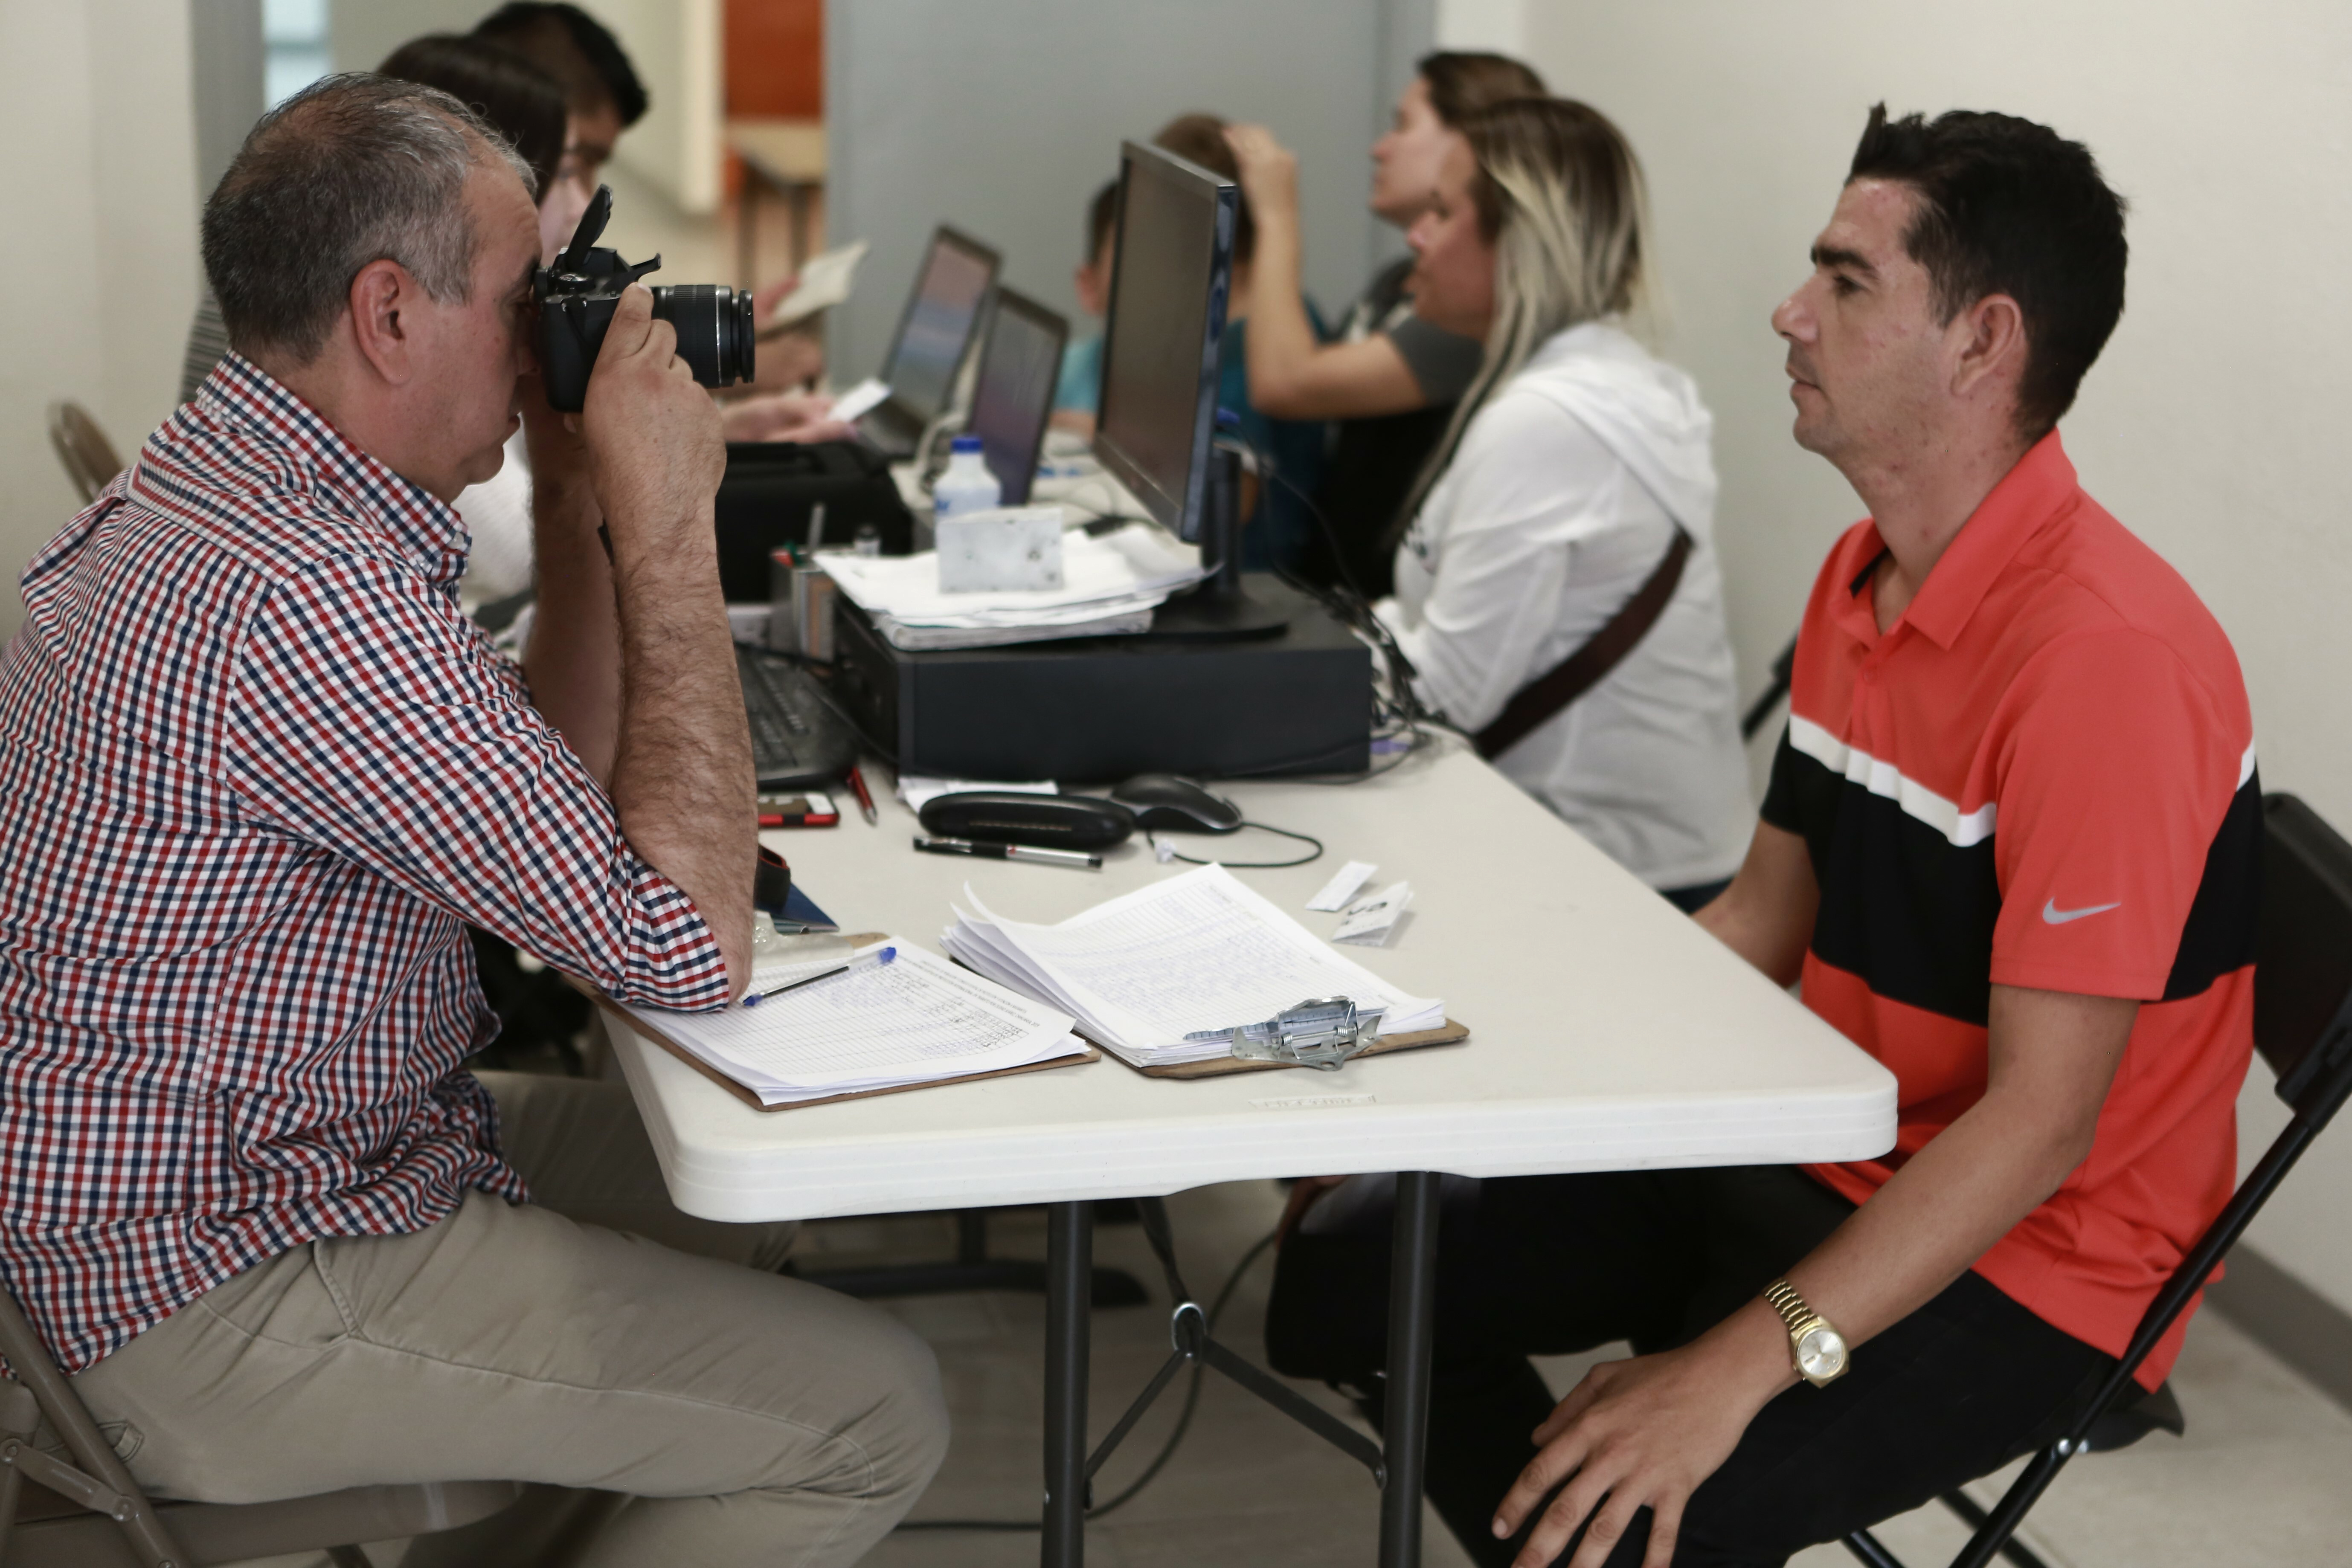 Cuban migrants are registered by Mexican immigration officials in Ciudad Juarez, to be taken across the Paso del Norte International bridge to be processed as asylum-seekers on the U.S. side of the border, April 29, 2019.